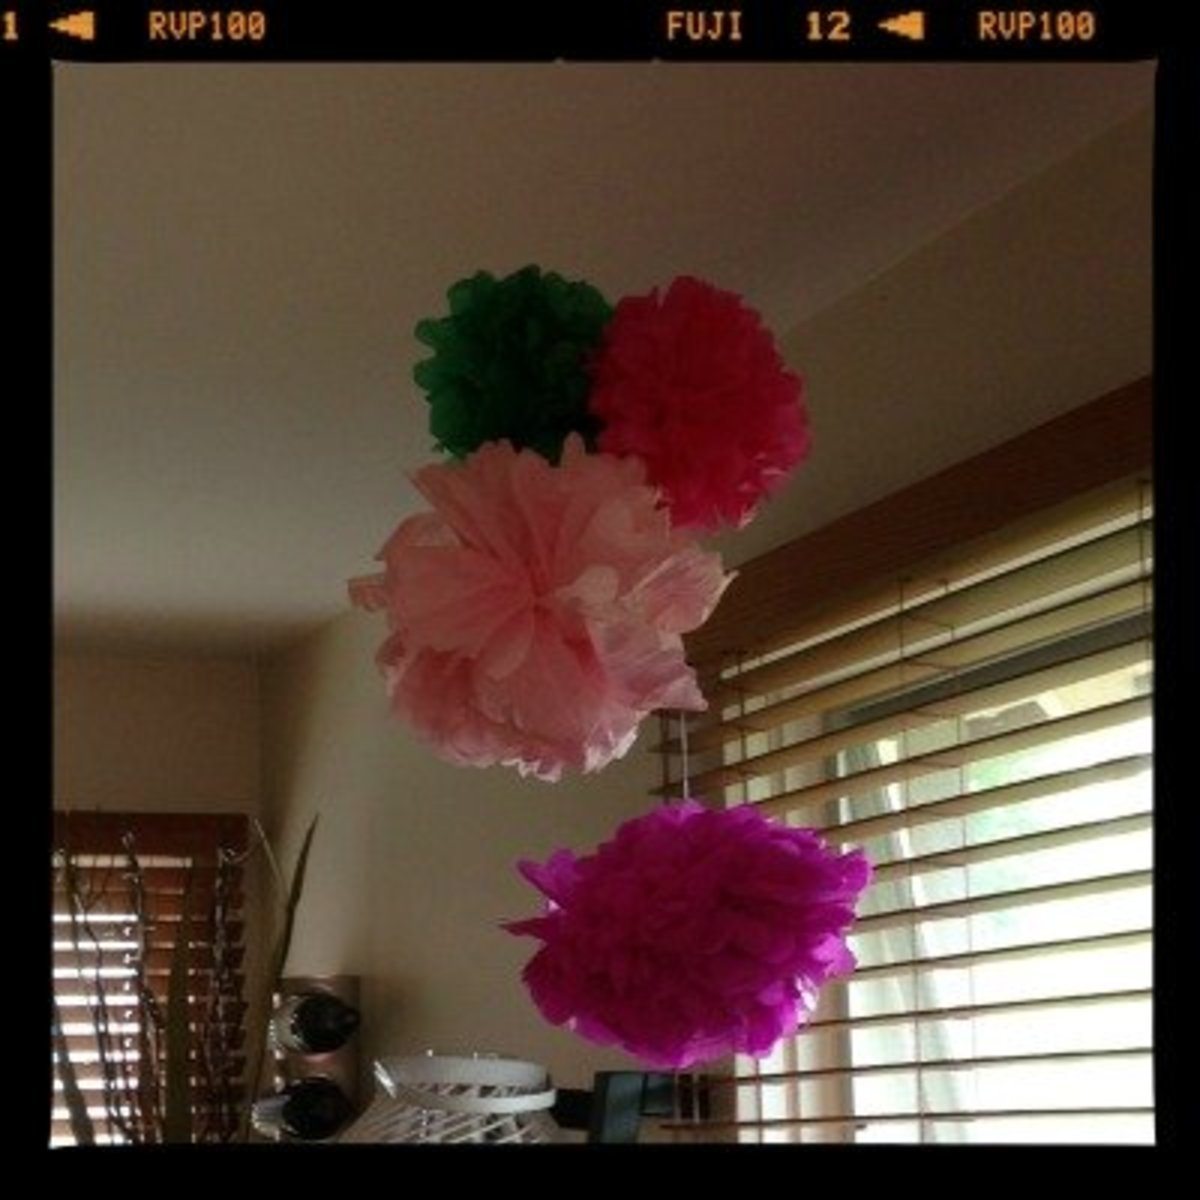 Tissue Paper Flowers - Easy To Make Decorations - Long Lasting & Reusable